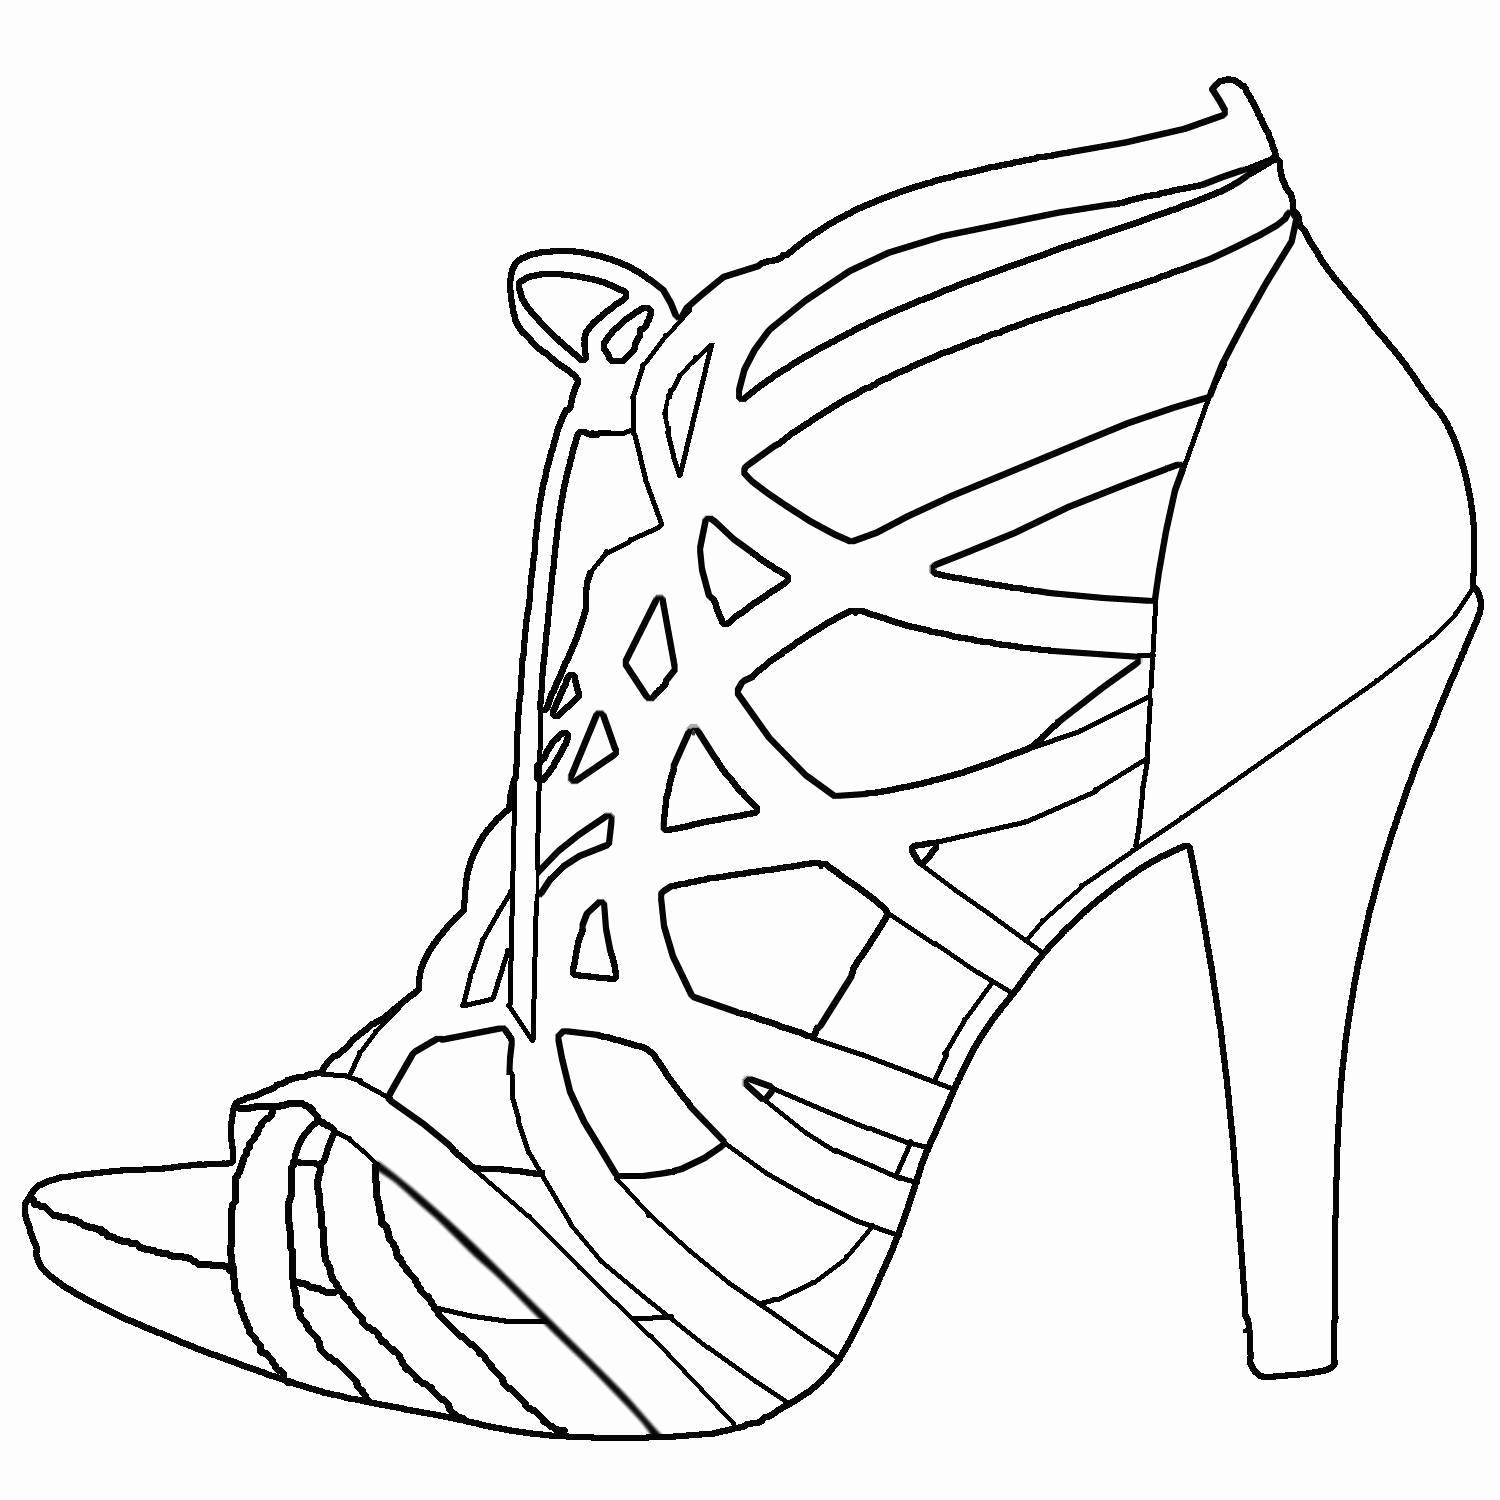 how to draw a high heel step by step my high heels drawing via tumblr on we heart it a by step step how high heel draw to